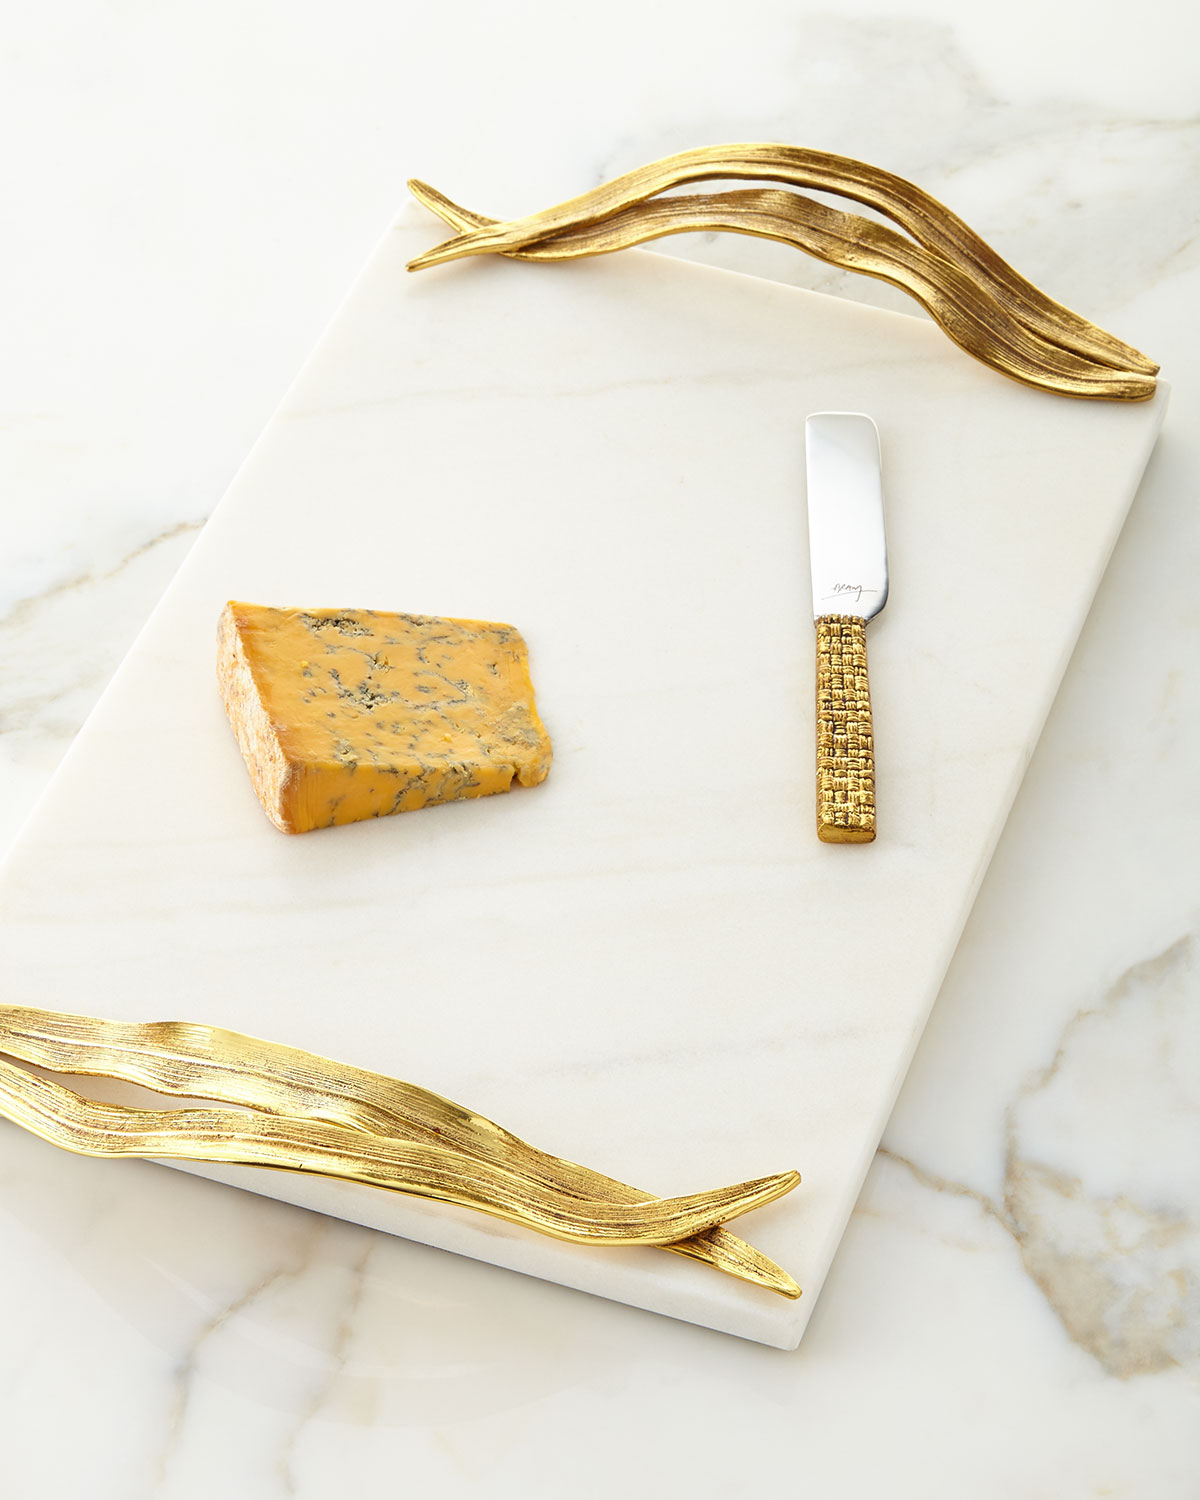 Michael Aram Palm Cheese Board With Knife Neiman Marcus